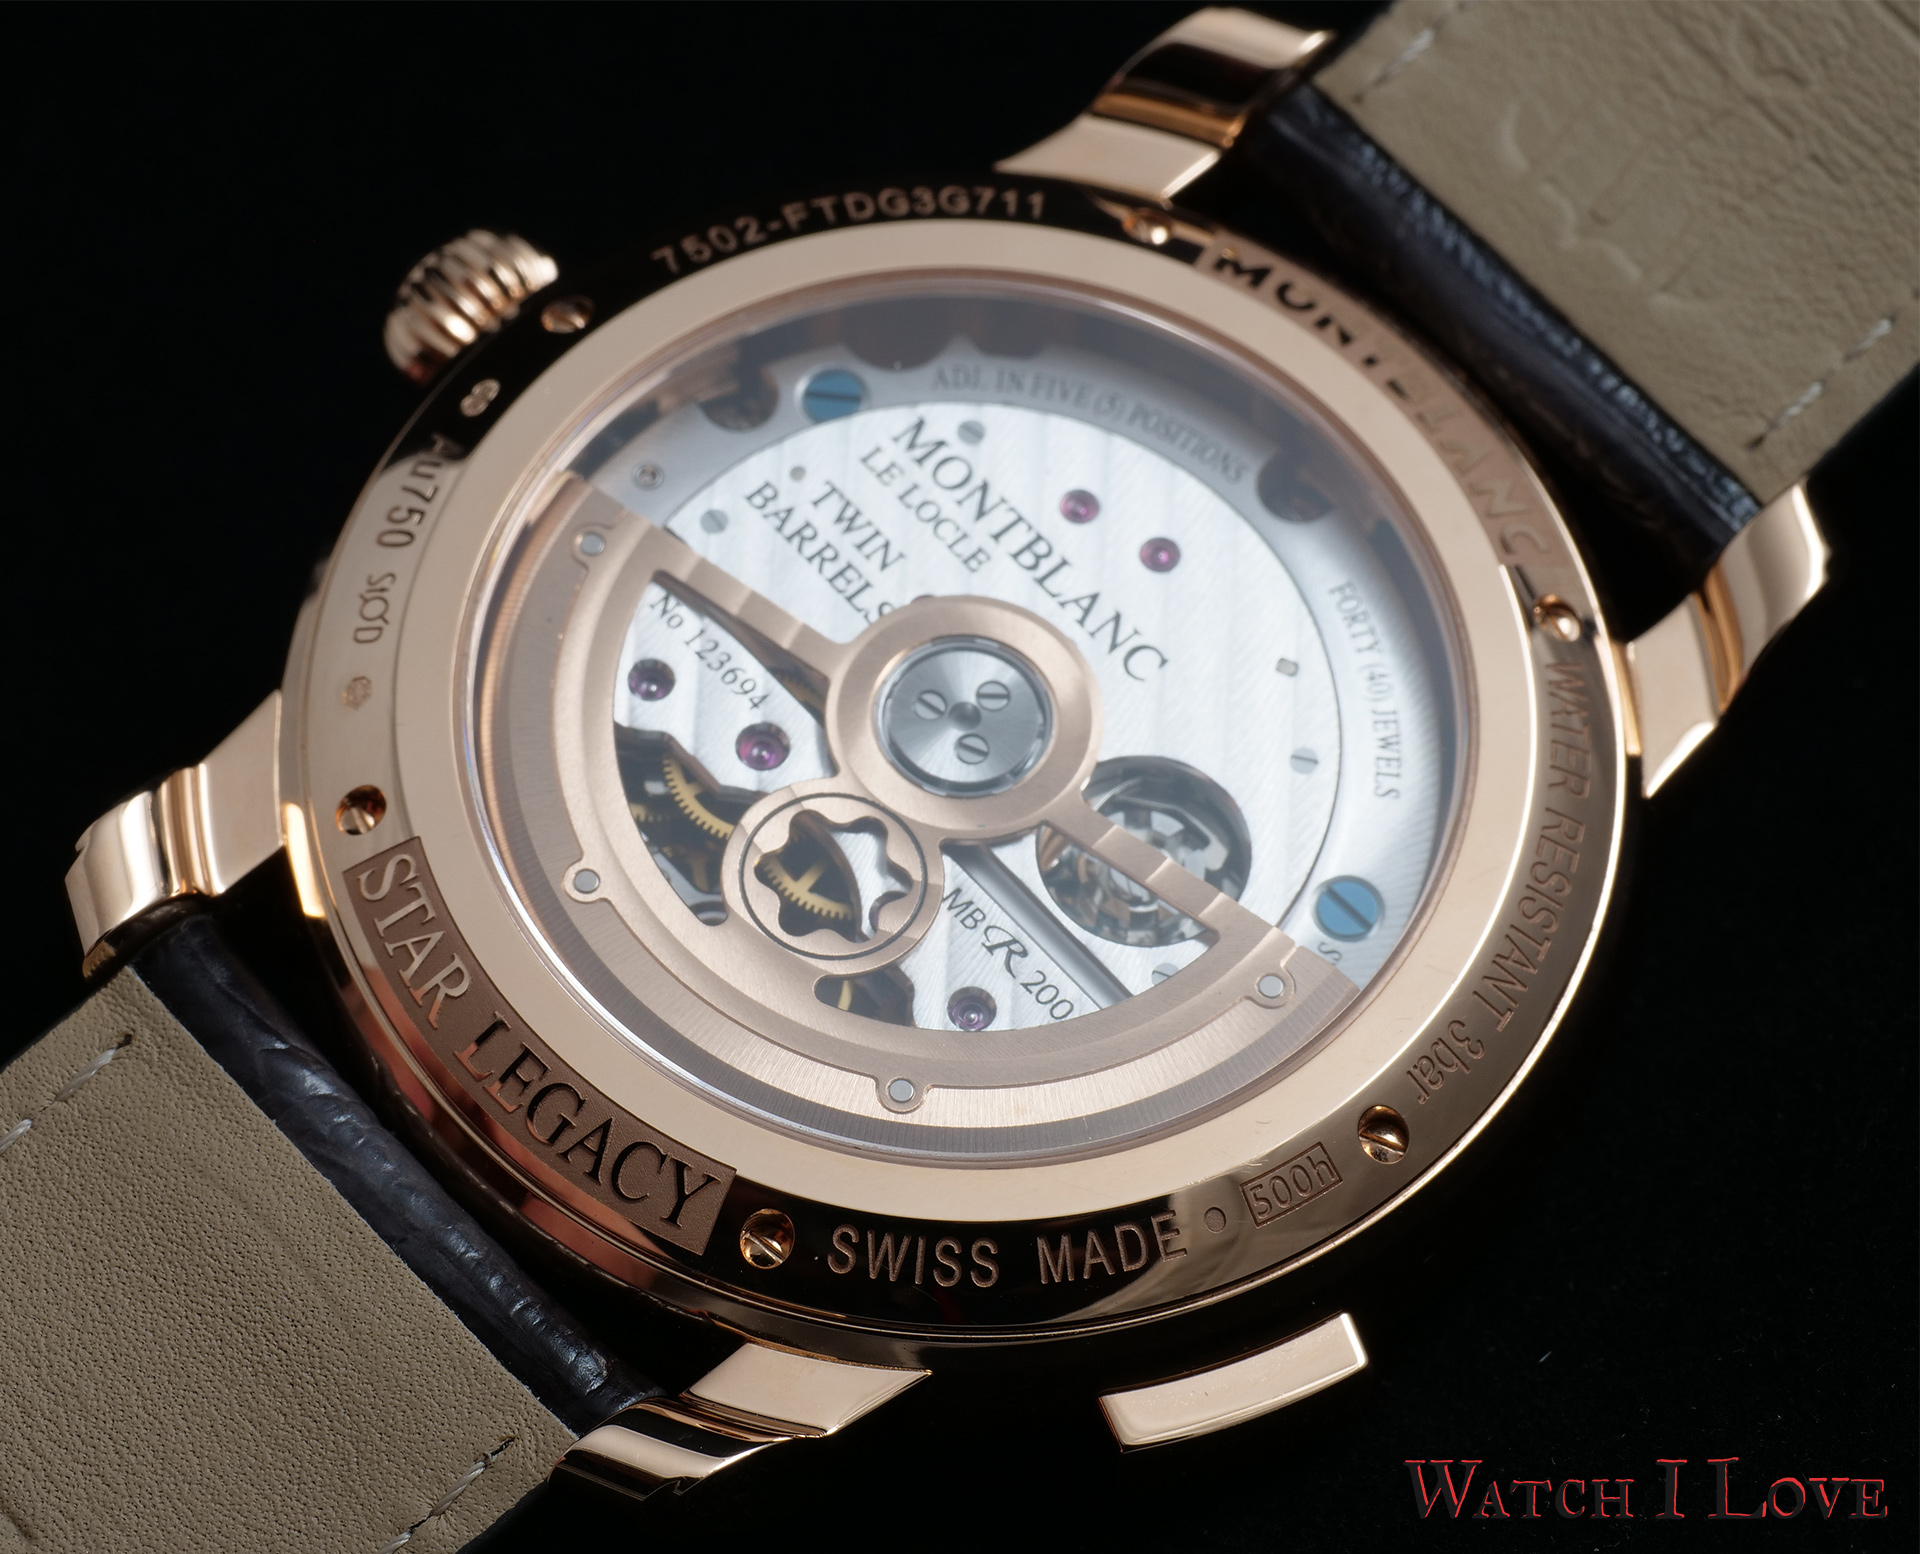 Montblanc Star Legacy Nicolas Rieussec Chronograph back view